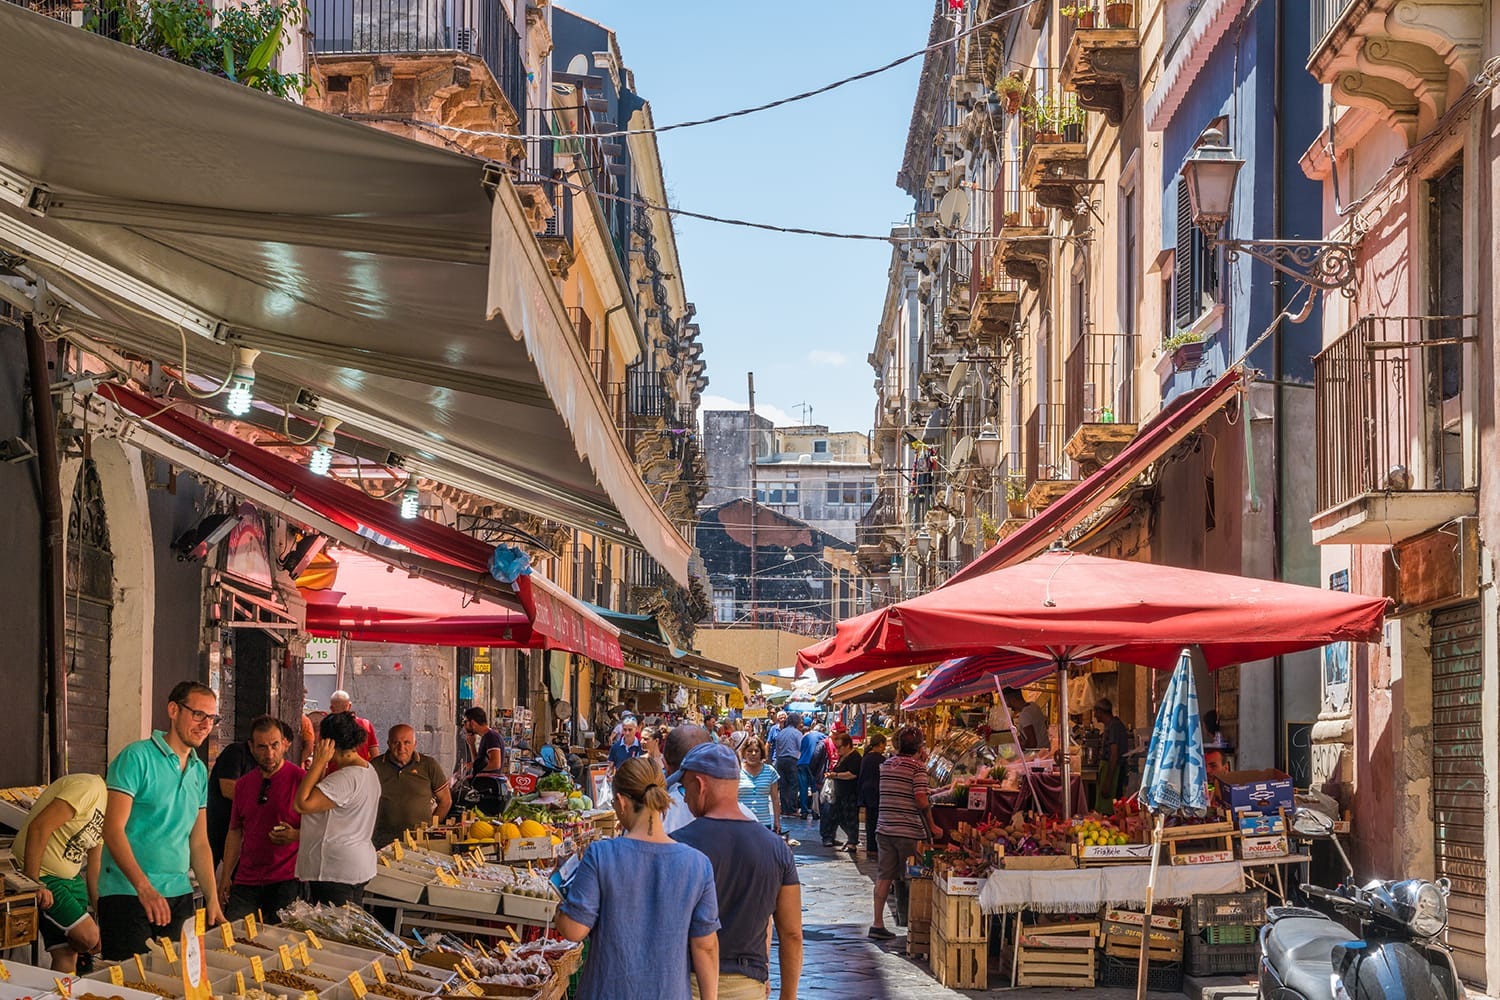 The colorful and vivid market of Catania, Italy